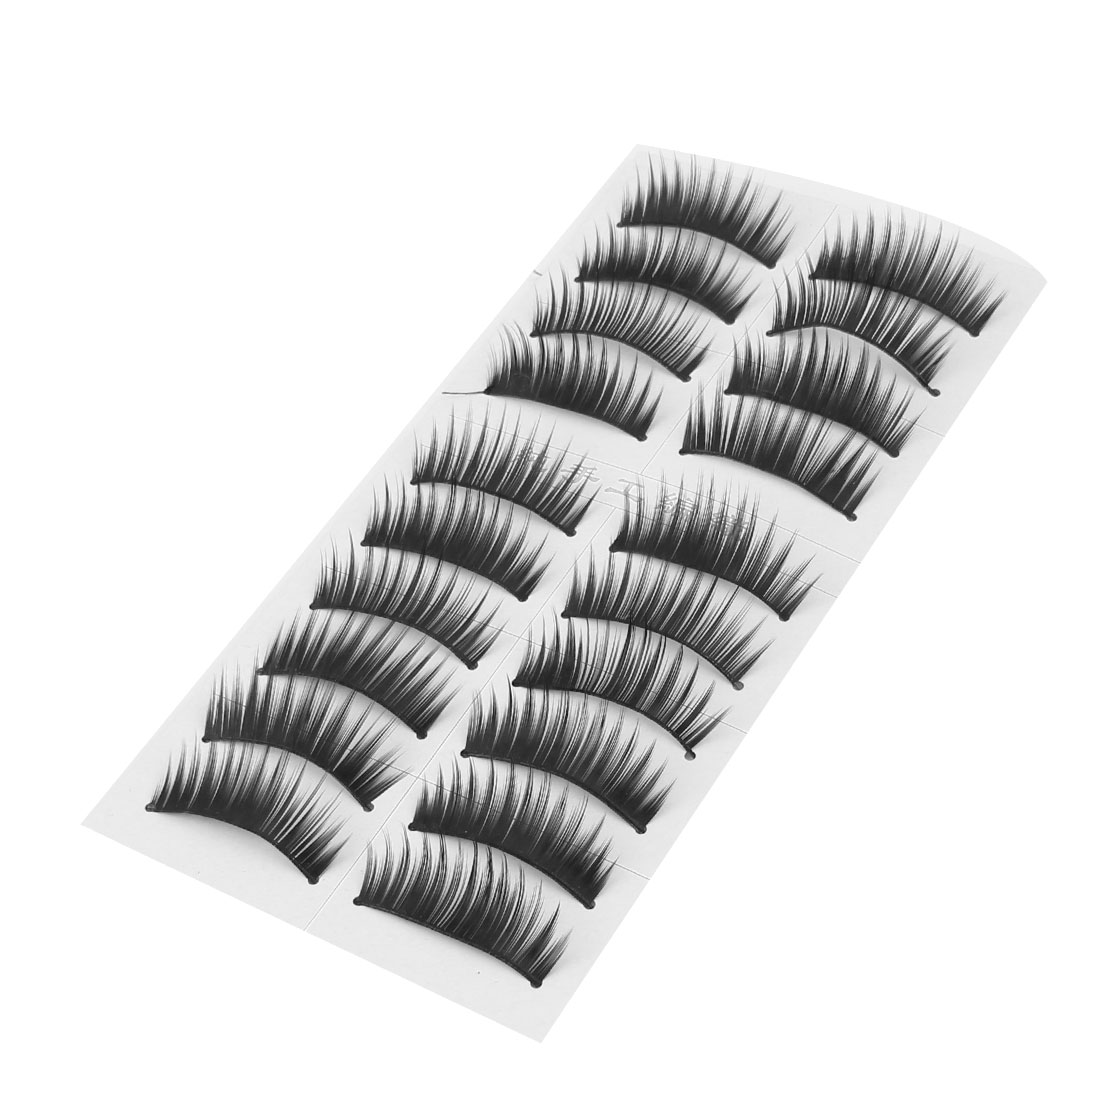 Unique BargainsLady Girl Makeup Tool False Fake Eye Lashes Eyelashes Black 32 x 15mm 10 Pairs